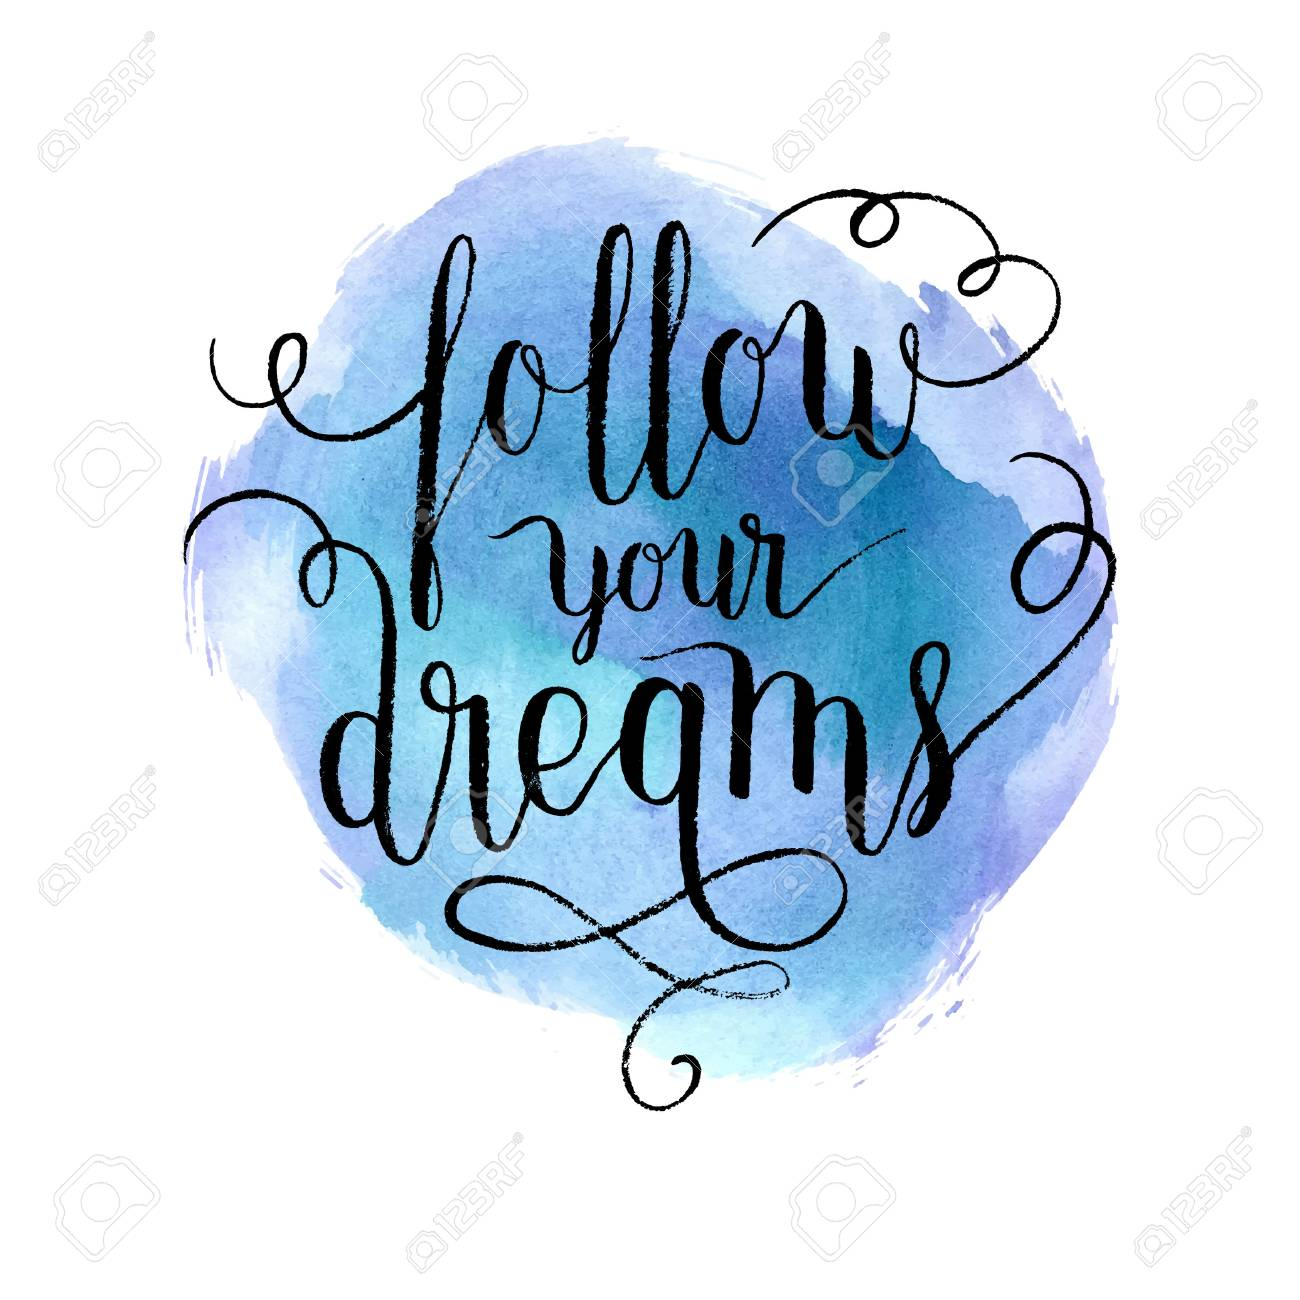 Follow your dreams greeting card, poster, print. Vector hand...